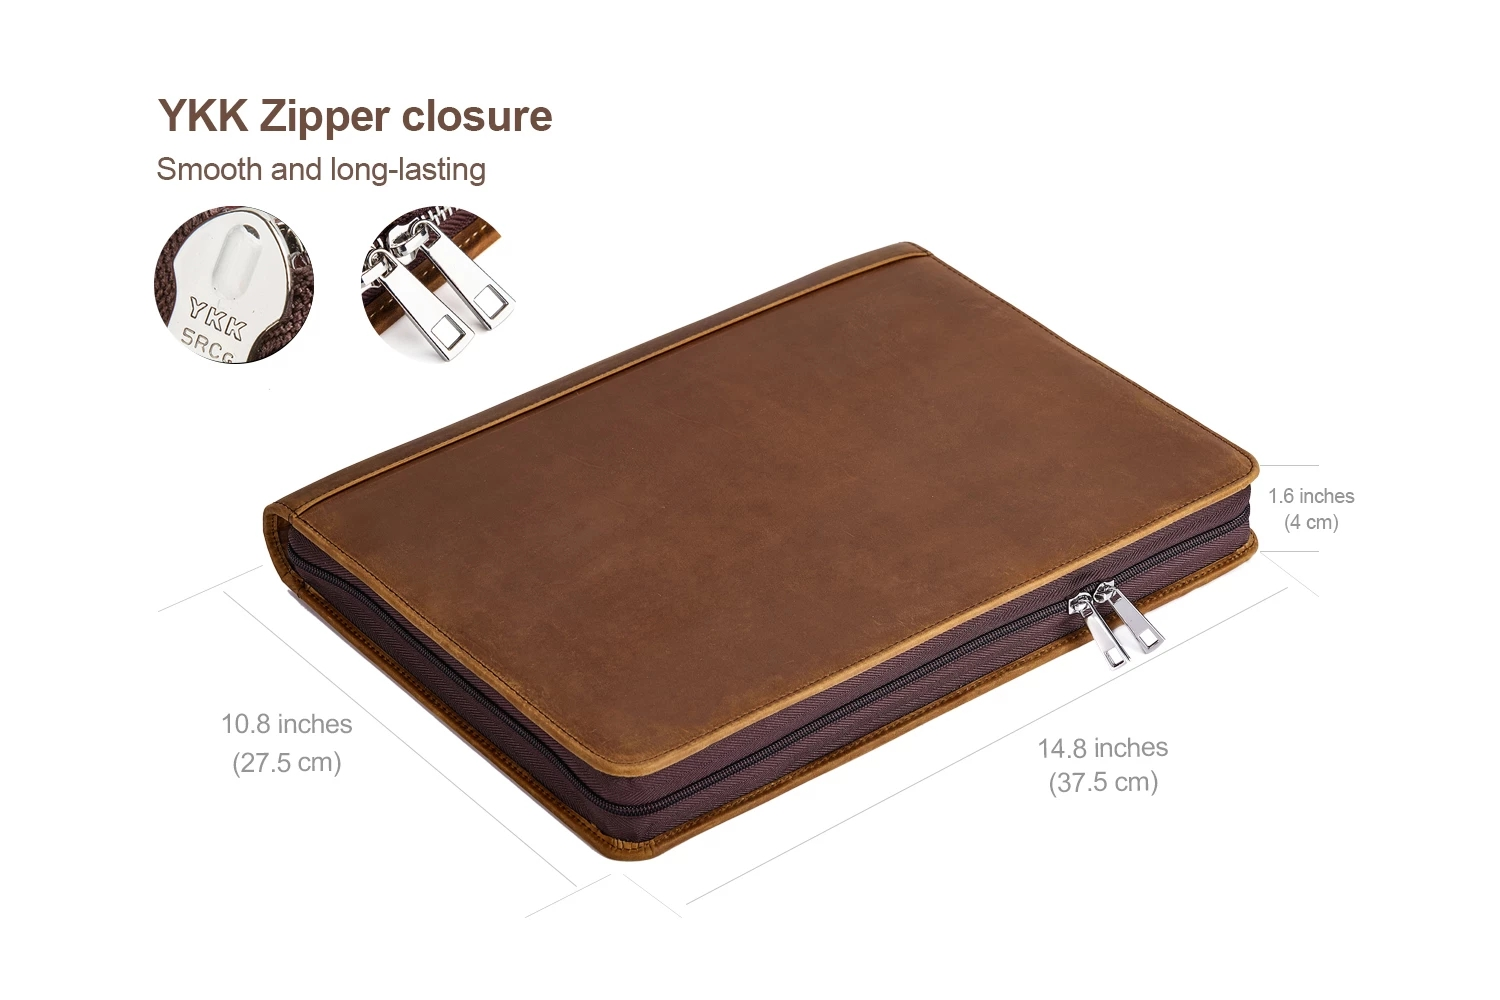 LeatherTech  Handmade Portfolio with 3 Ring Binder and Clipboard for A4 Size Notepad Crazy Horse Leather